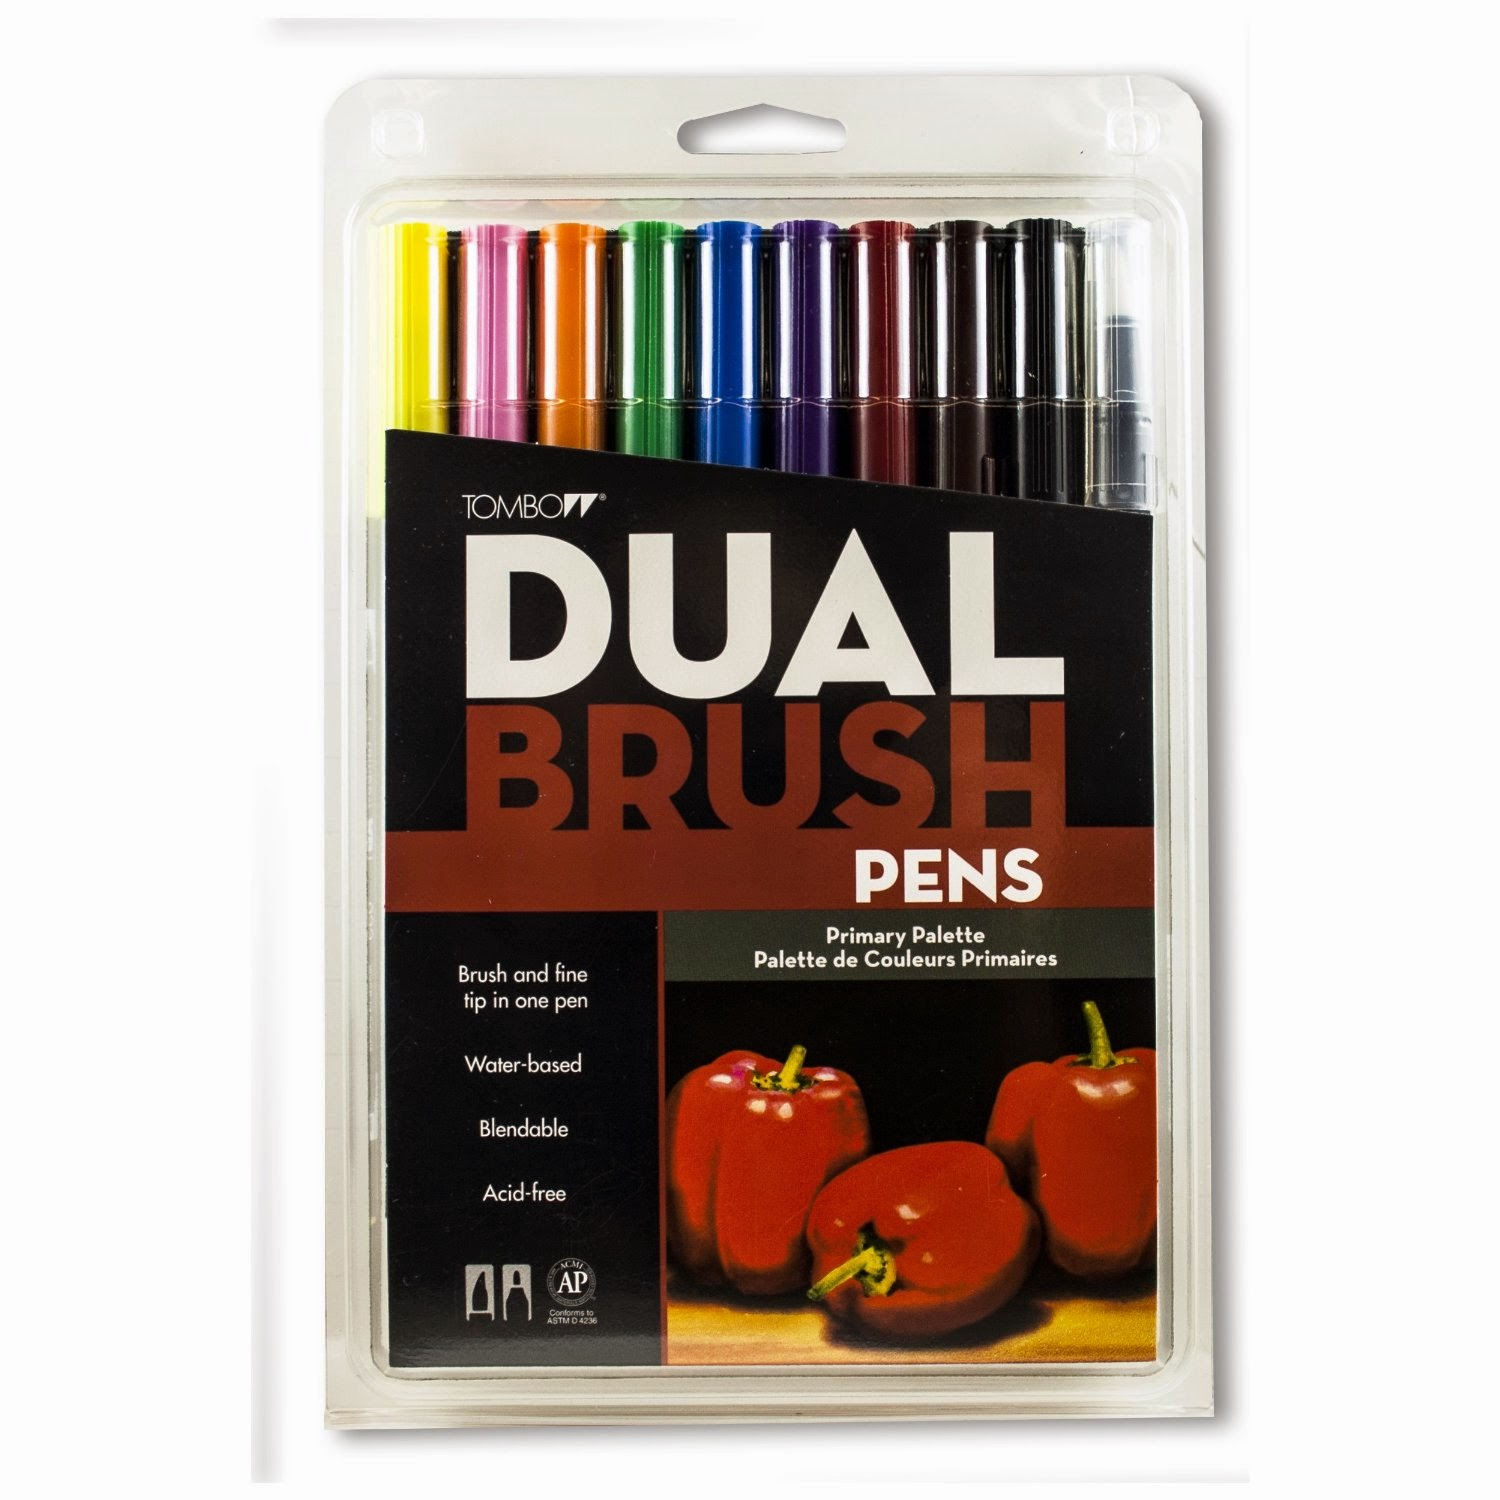 http://www.amazon.com/Tombow-Brush-10-Pack-Primary-Colors/dp/B0044JIU2S/ref=pd_ybh_16